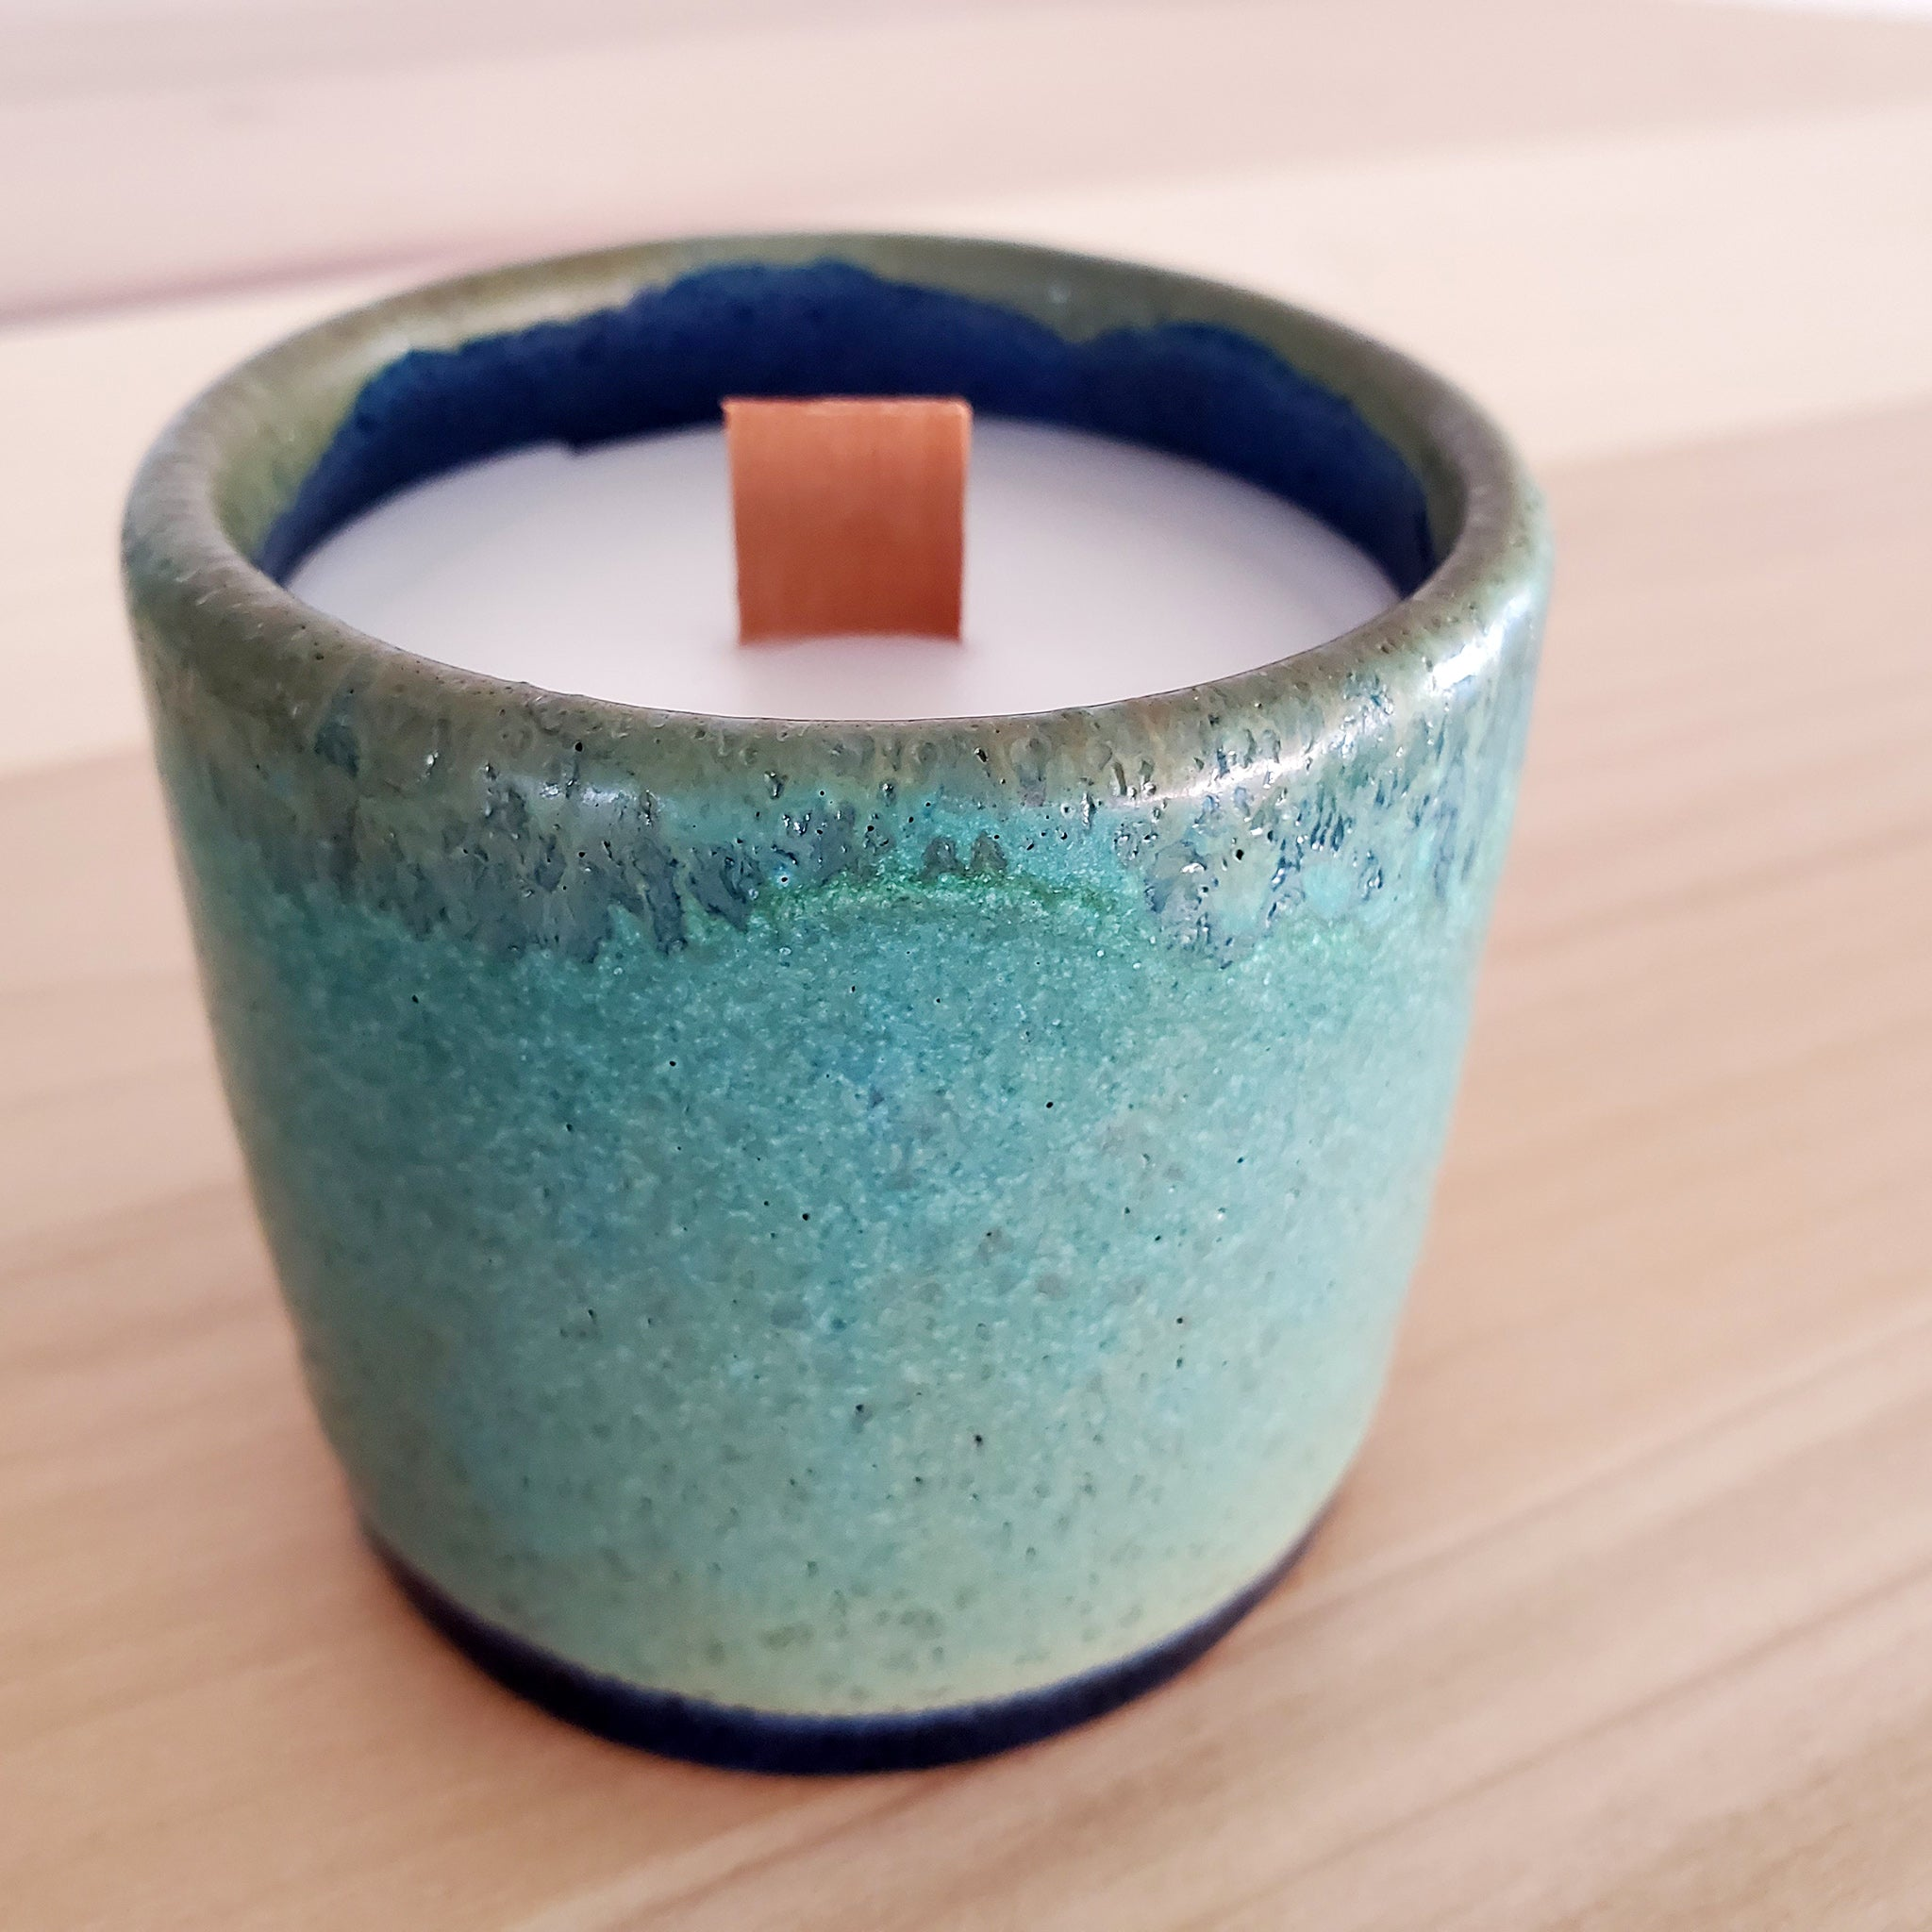 MaD Wax Pottery Candles- Cucumber Mint